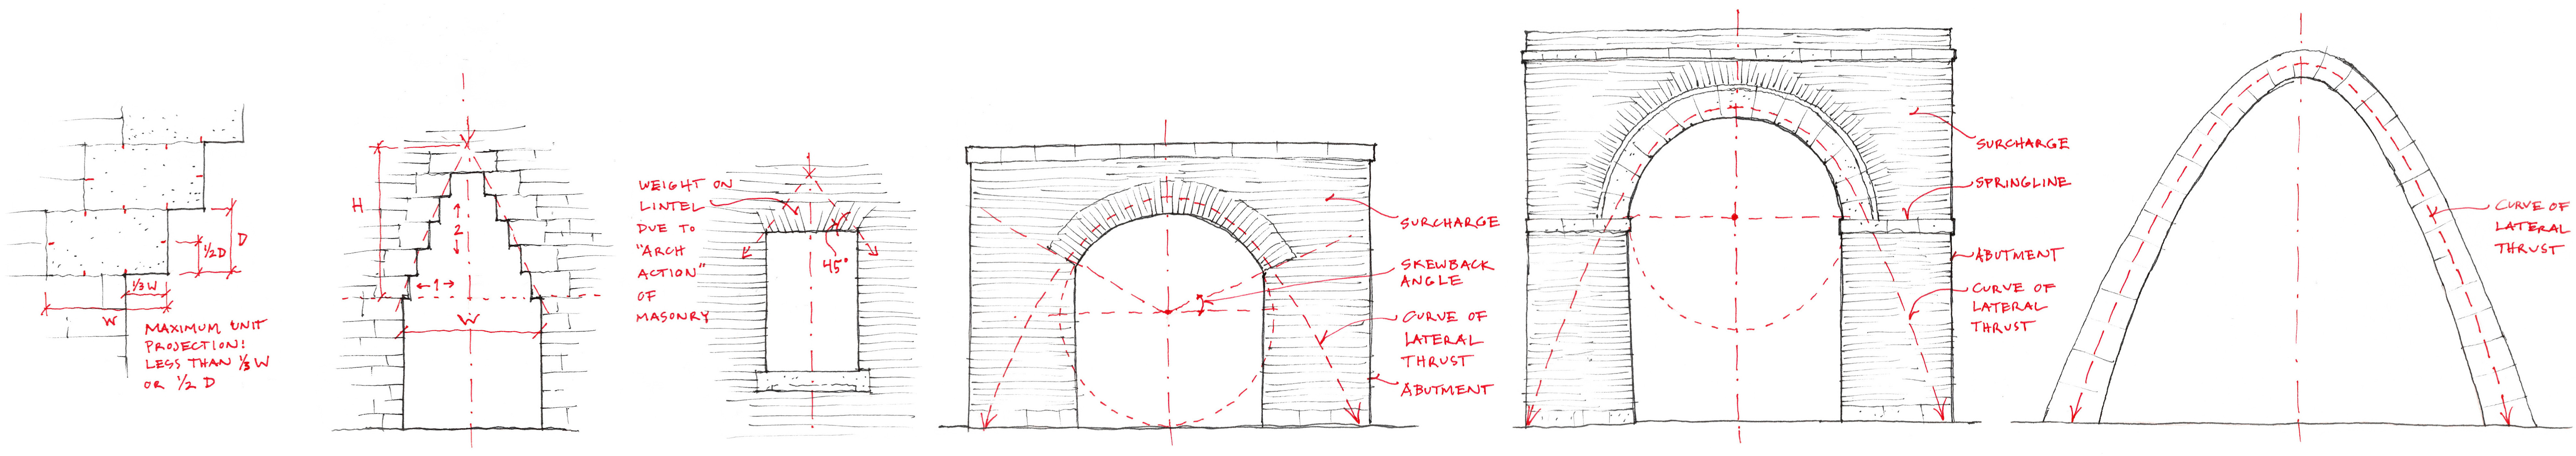 Stone Spans The Furthest As An Arch Which Utilizes Its Compressive Strength There Are Many Forms Of Arches Earliest Development From Post And Lintel